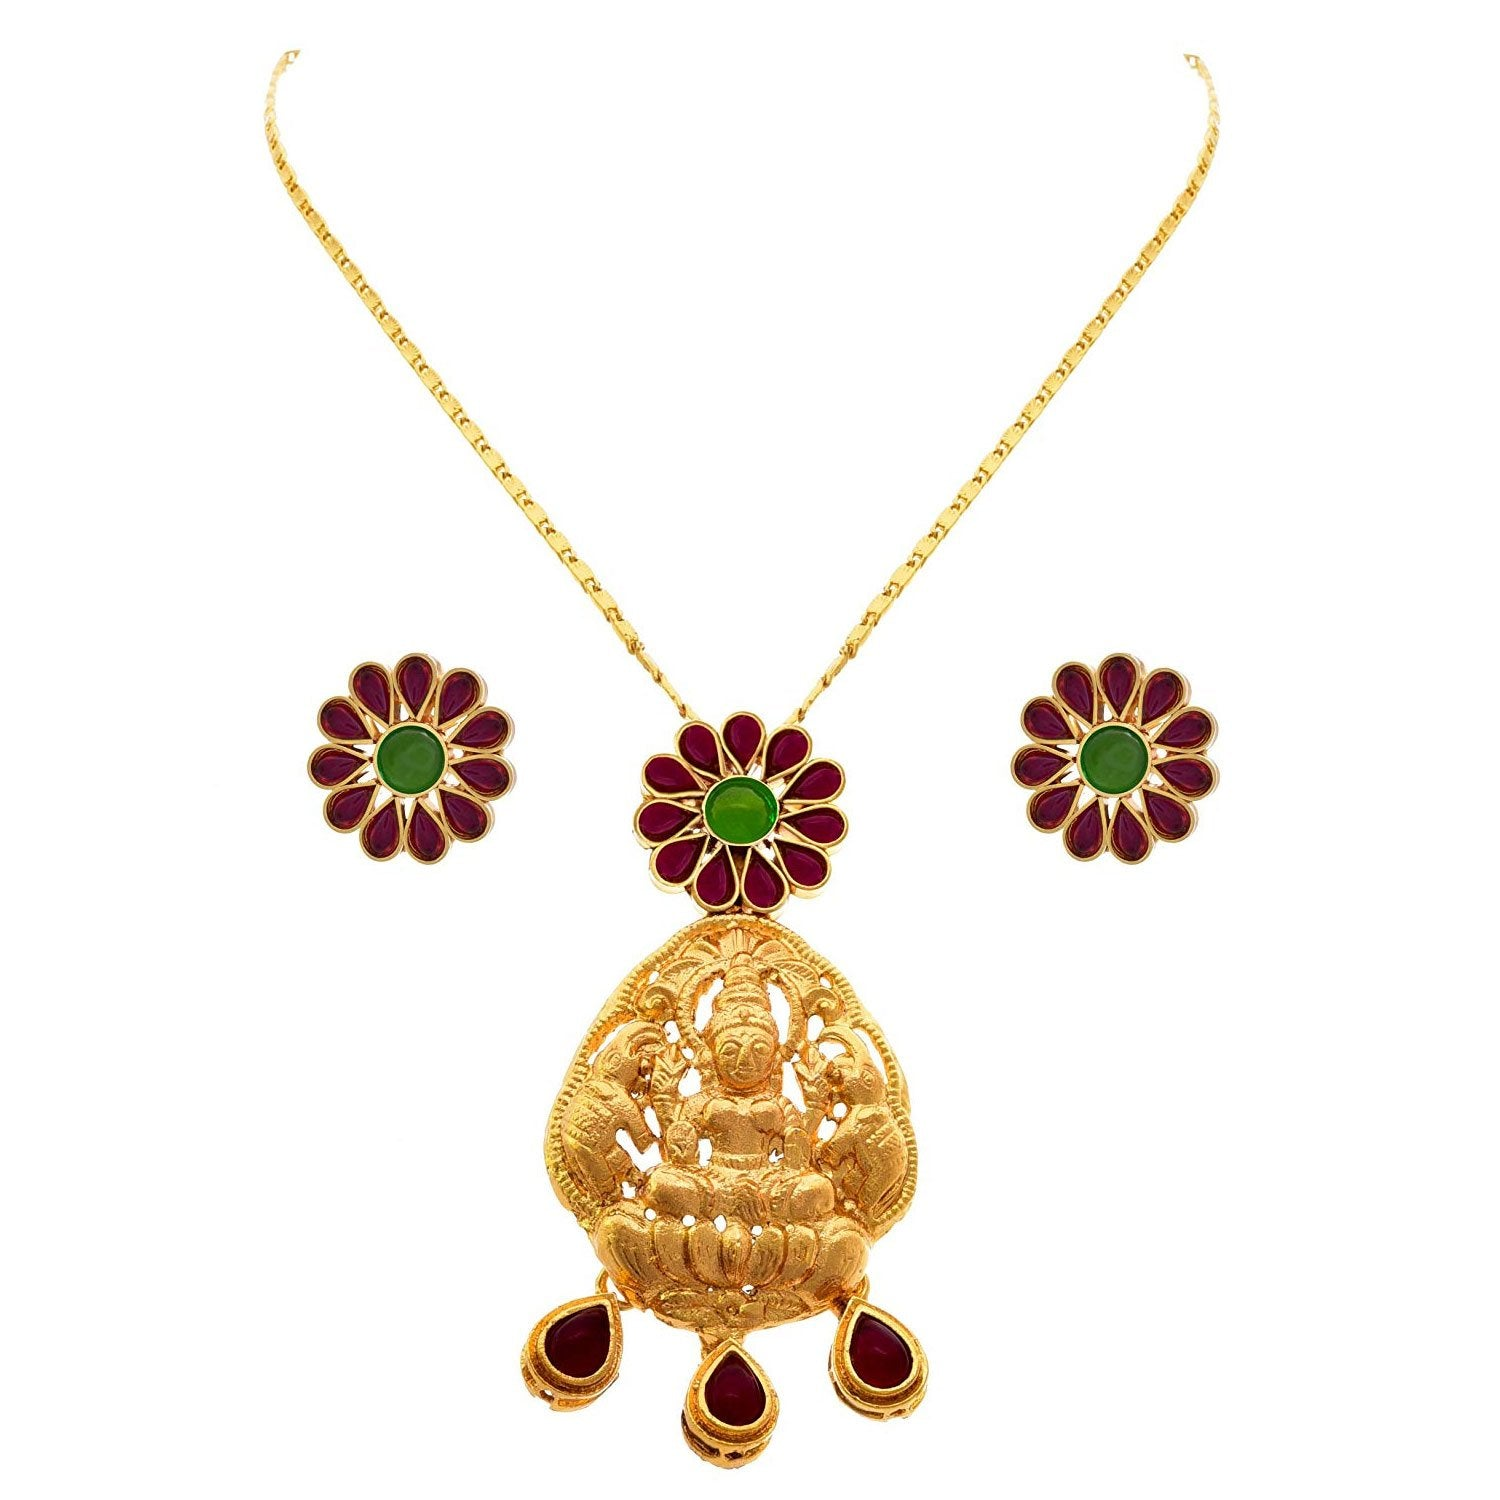 JFL - Traditional Ethnic Temple Goddess Laxmi One Gram Gold Plated Pink & Green Stone Designer Pendant Set with Earrings for Women & Girls.